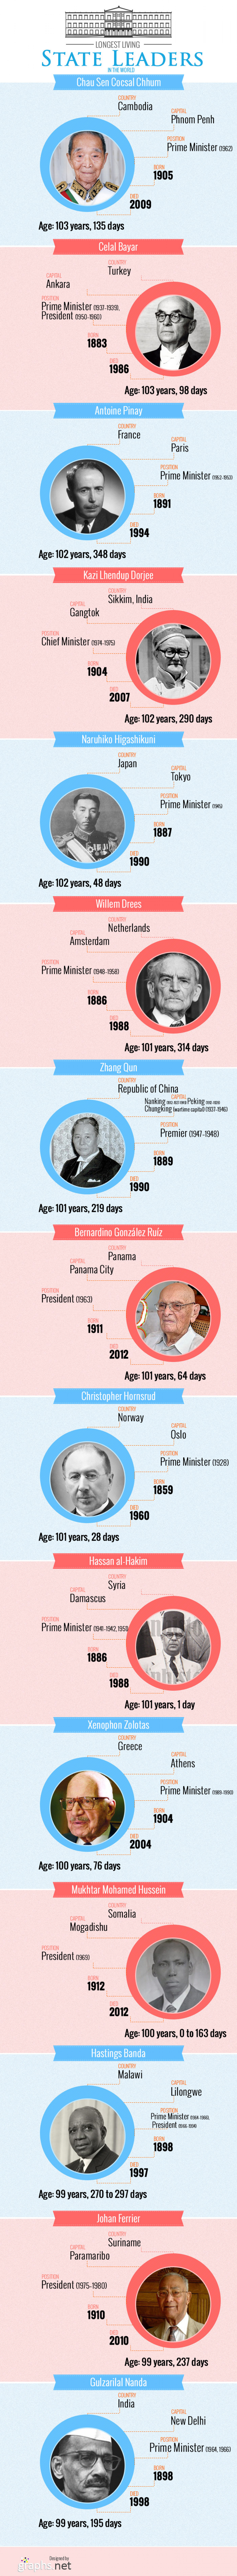 World's longest living state leaders Infographic